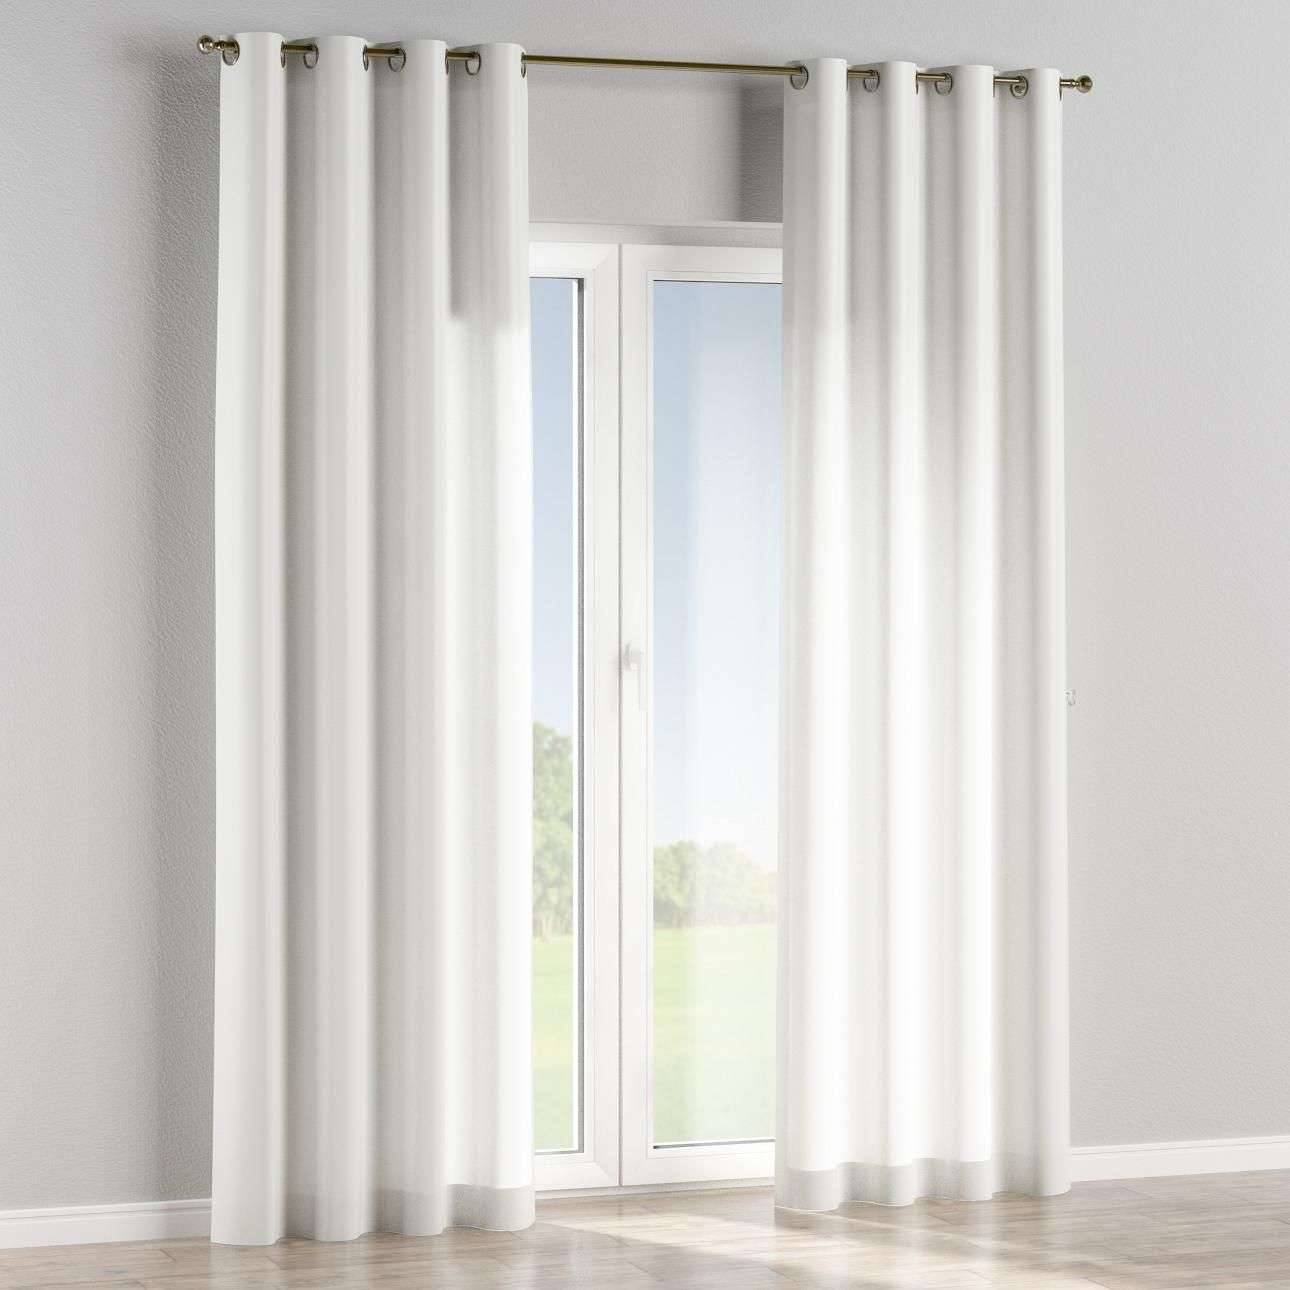 Eyelet curtains in collection Christmas , fabric: 630-61